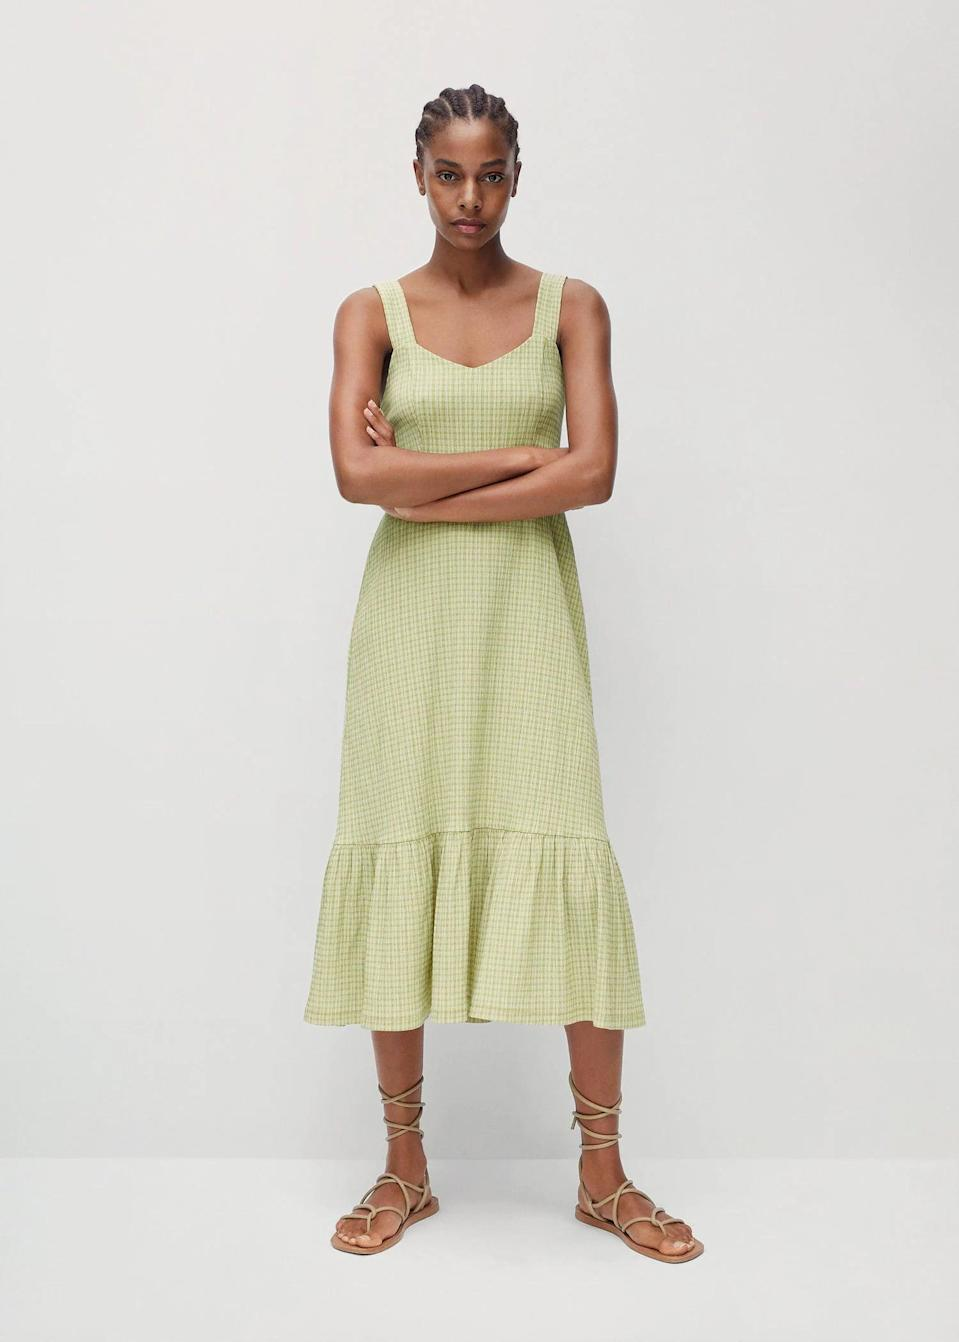 <p>The silhouette and tiered hem of this <span>Mango Gingham Check Dress</span> ($50) lend it a chic look.</p>